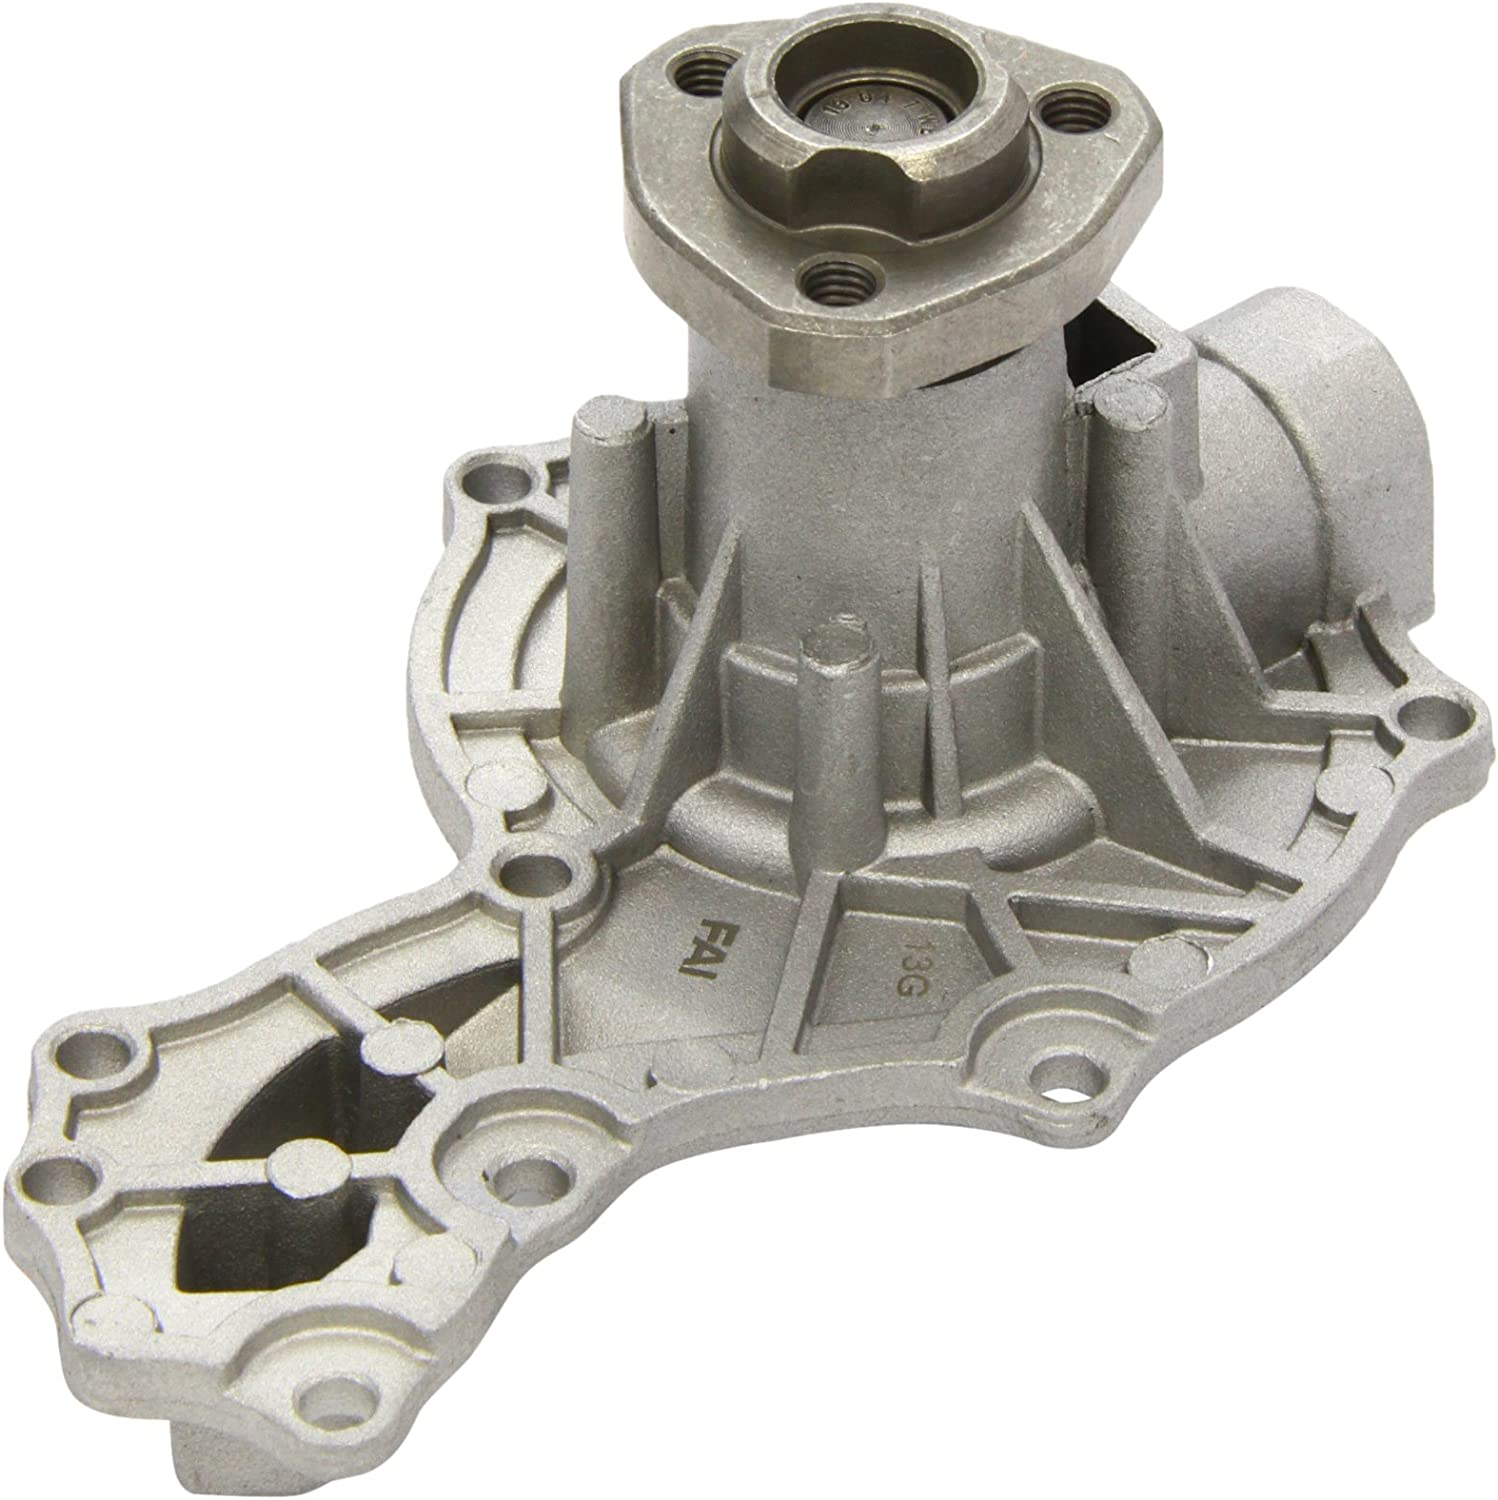 FAI Autoparts WP3193 Water Pump